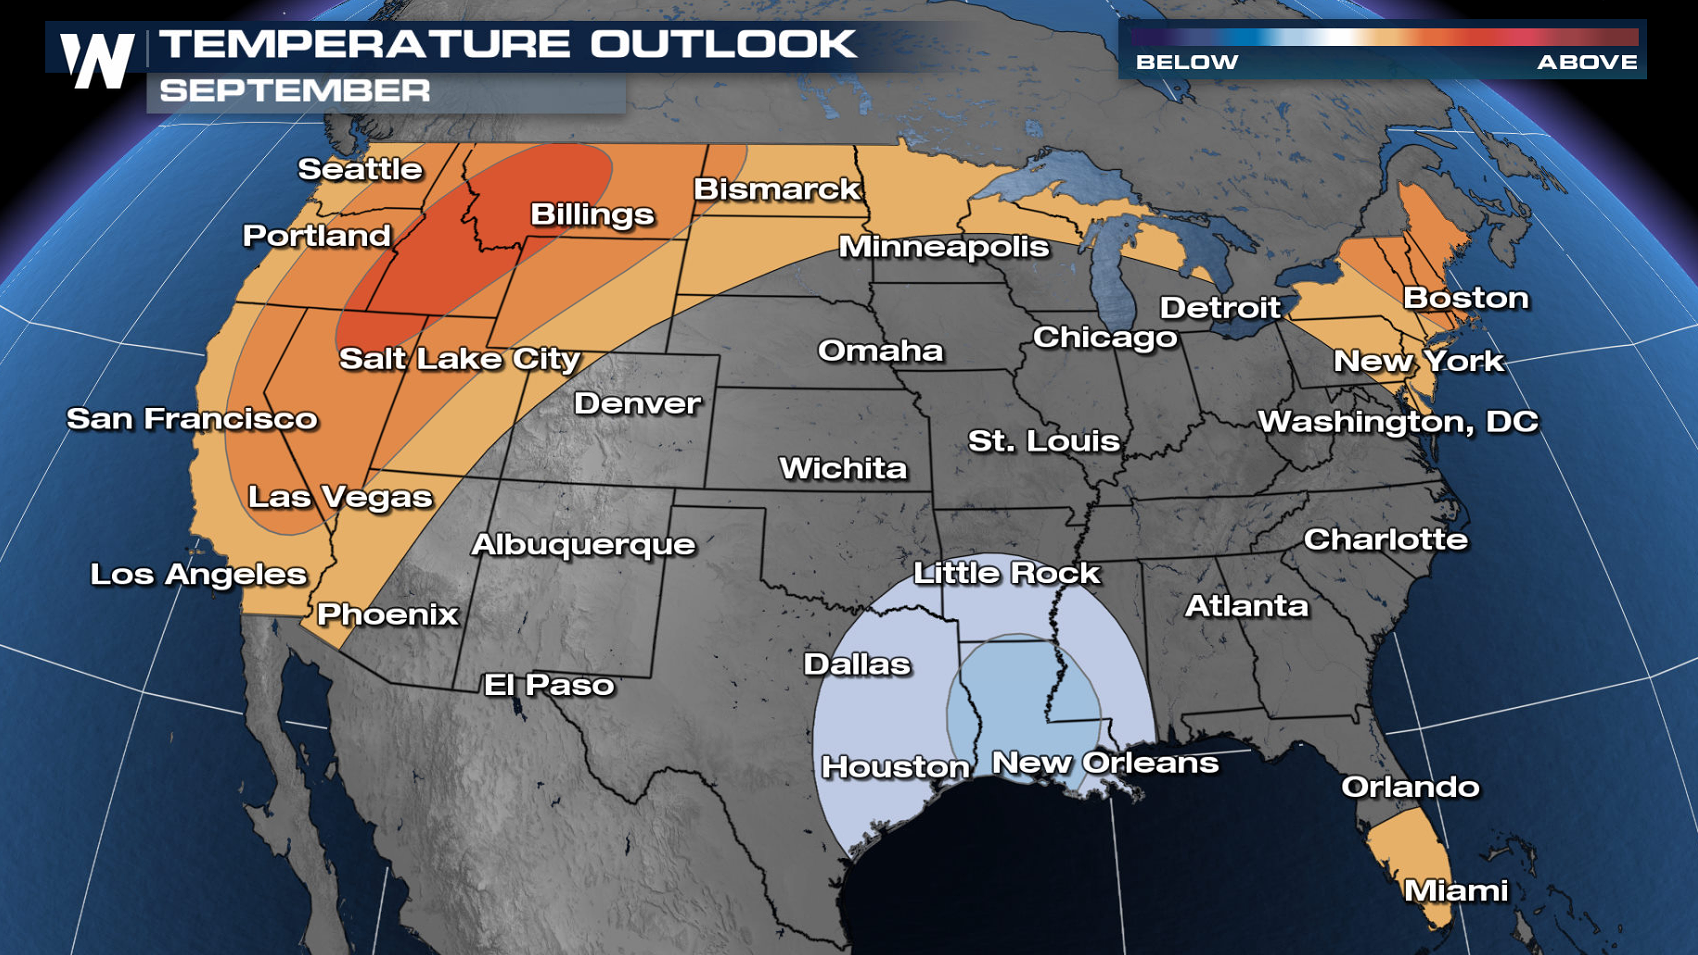 September Outlook from the Climate Prediction Center